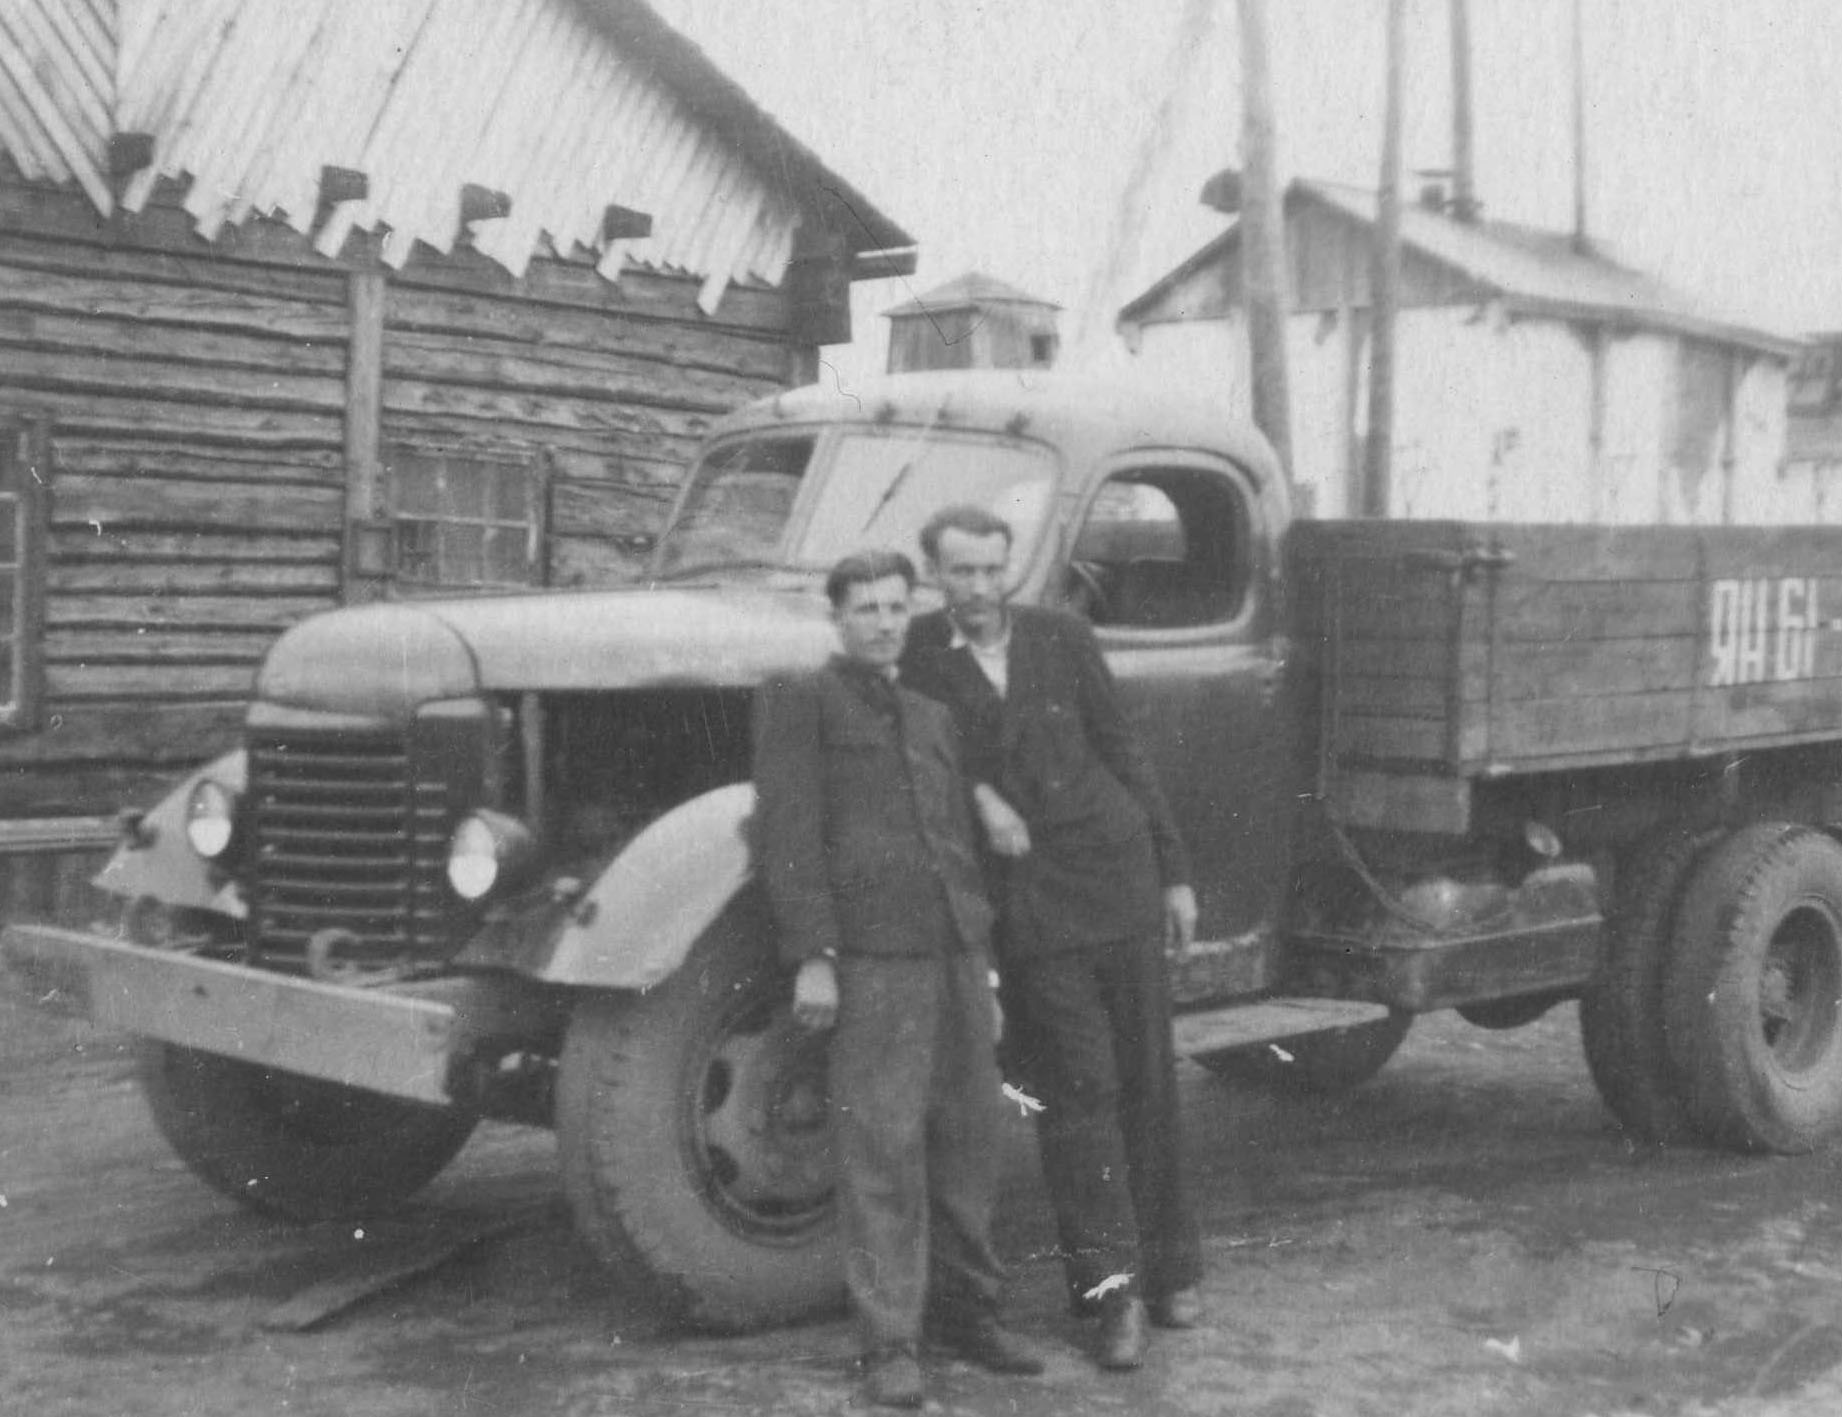 Bronius Zlatkus in front of a lorry, early 1950s